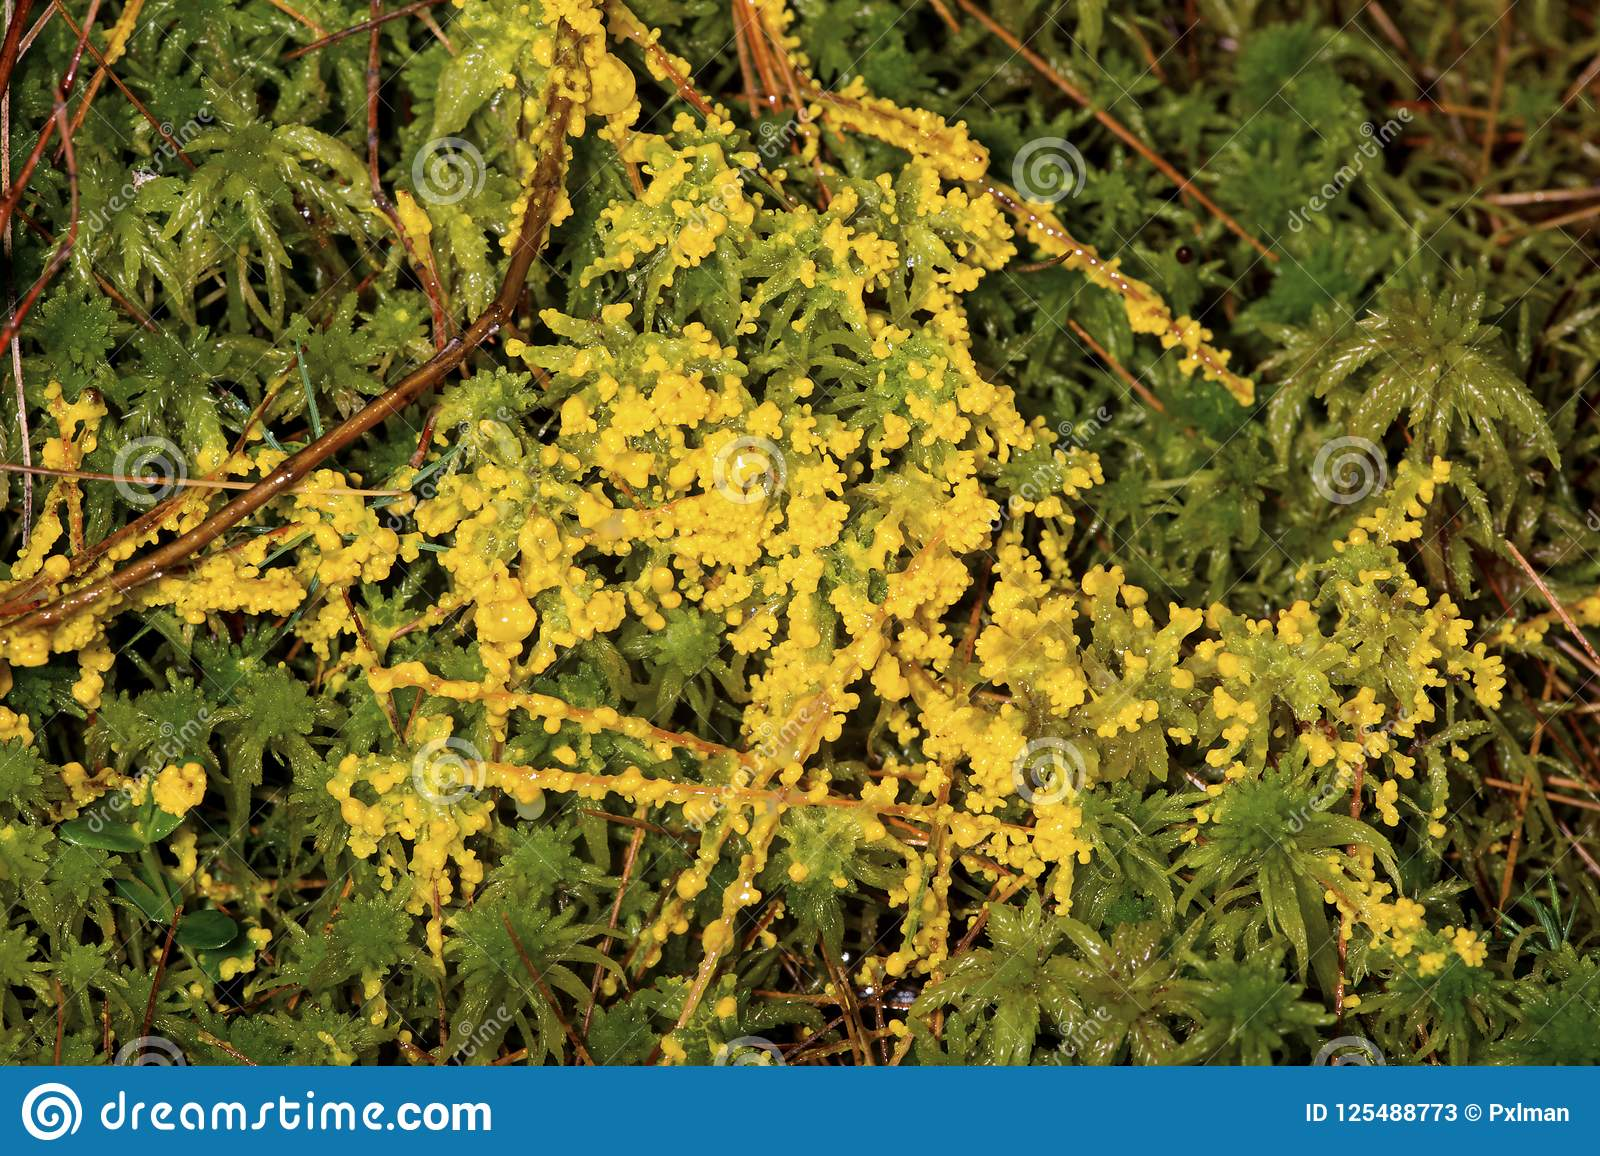 Yellow Slime Mold Growing Over Peat Moss In New Hampshire ...